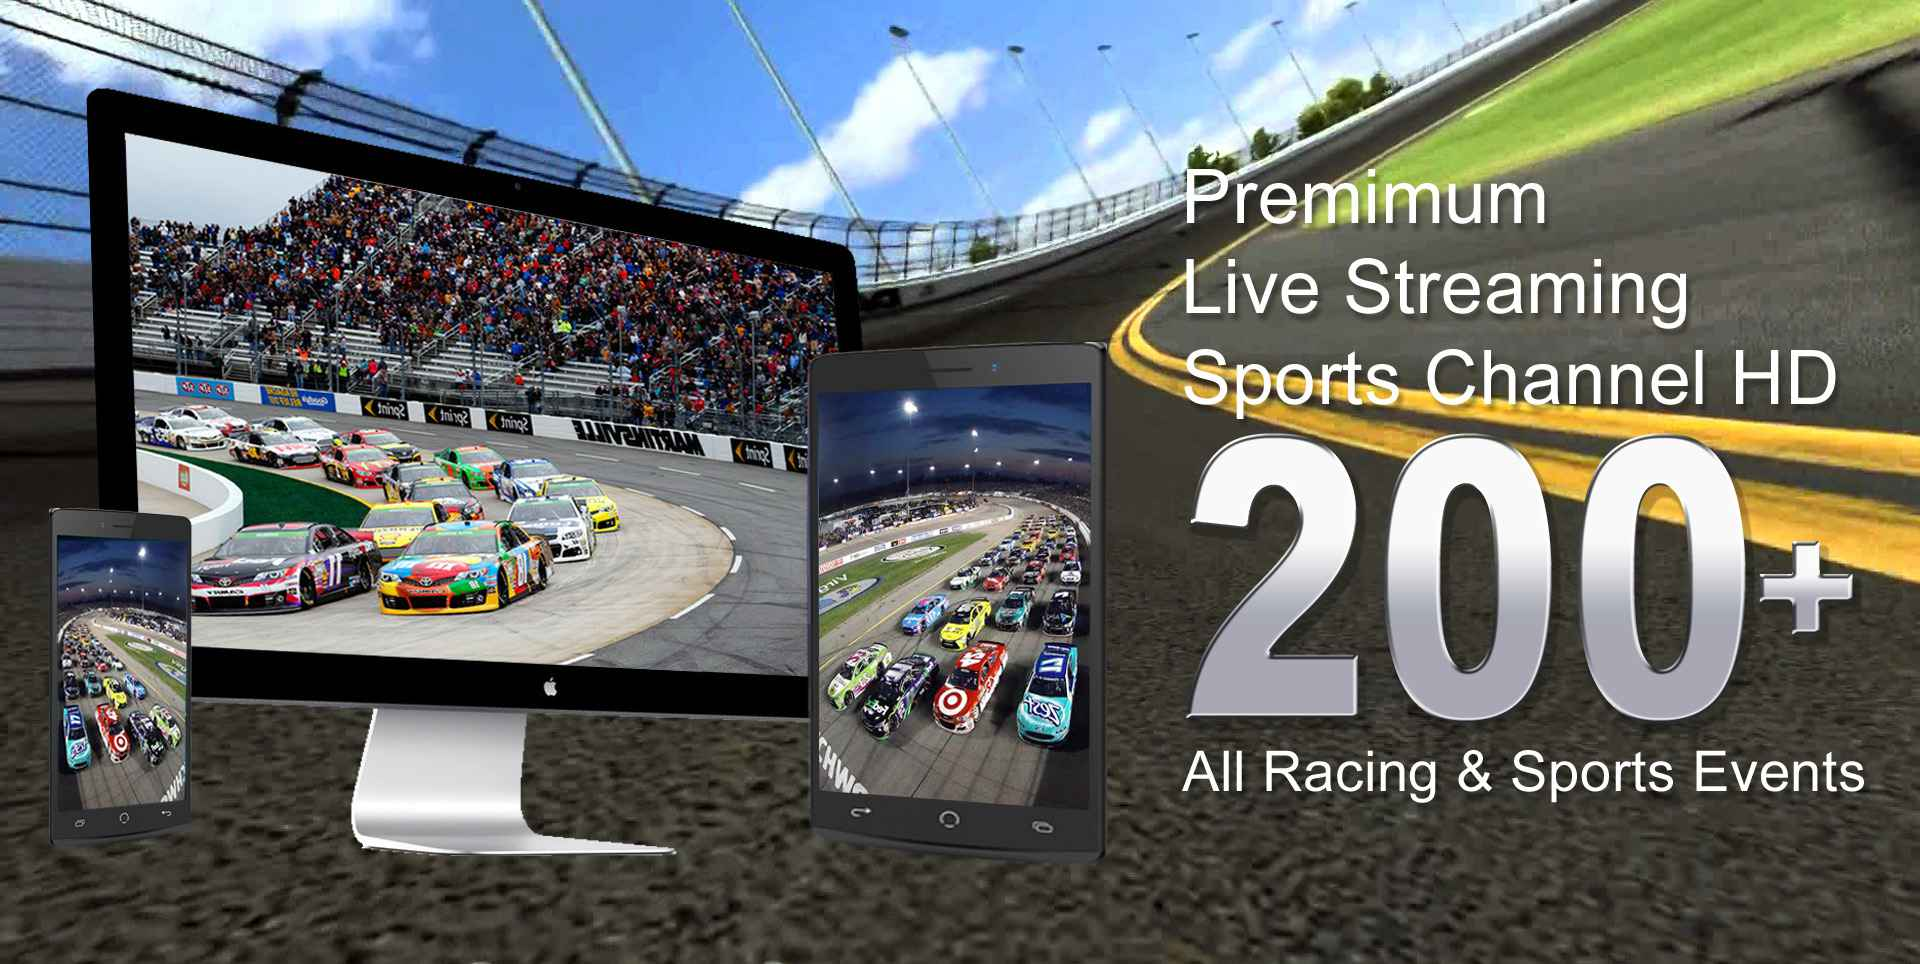 2015-nascar-race-unoh-200-live-streaming